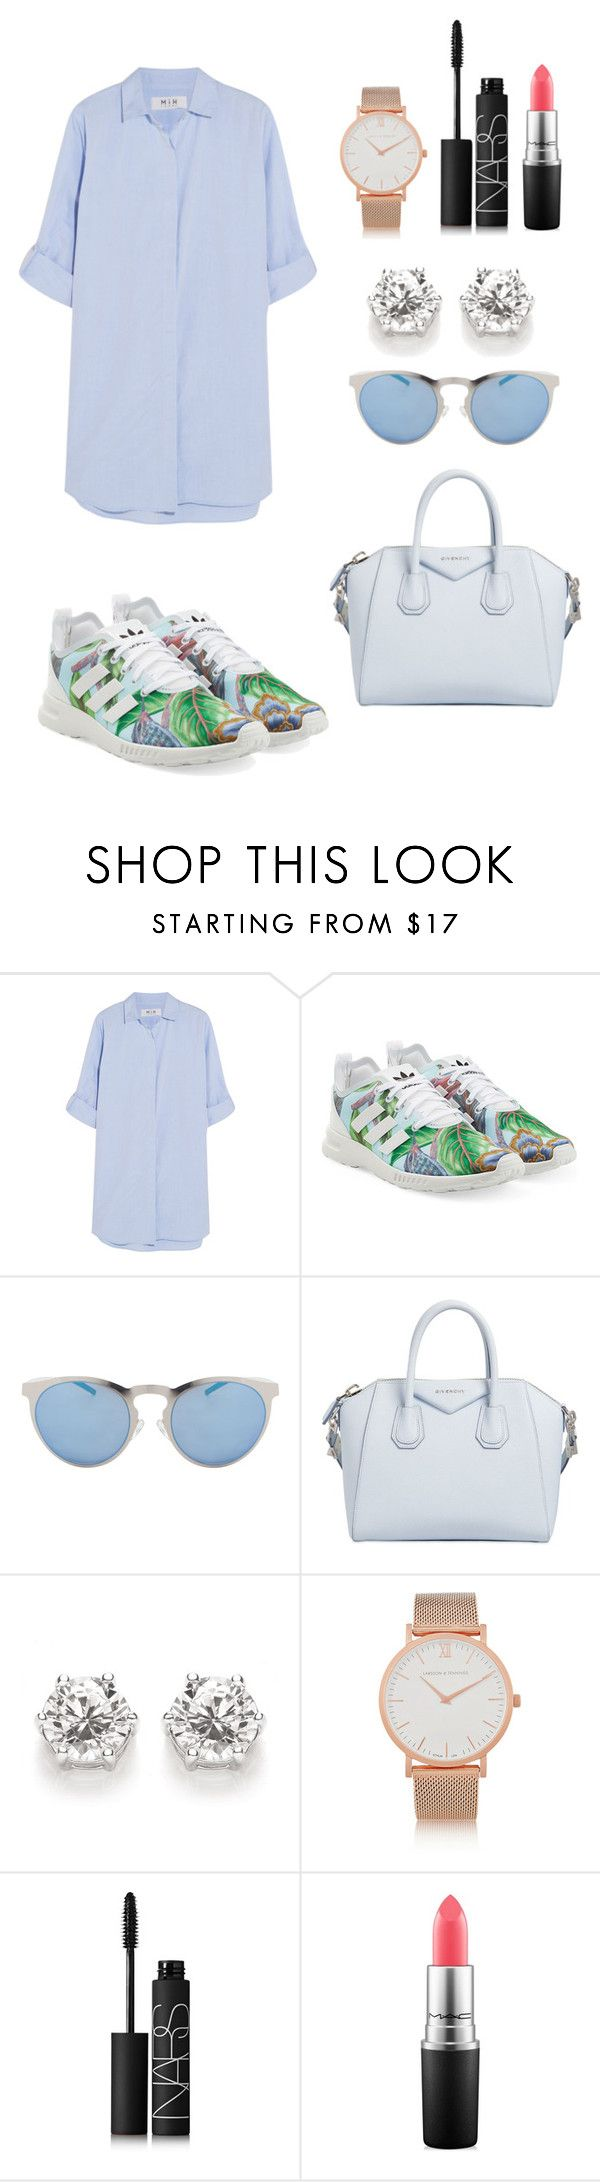 """Sin título #95"" by hannymontanita on Polyvore featuring moda, MiH Jeans, adidas Originals, Illesteva, Givenchy, Larsson & Jennings, NARS Cosmetics y MAC Cosmetics"